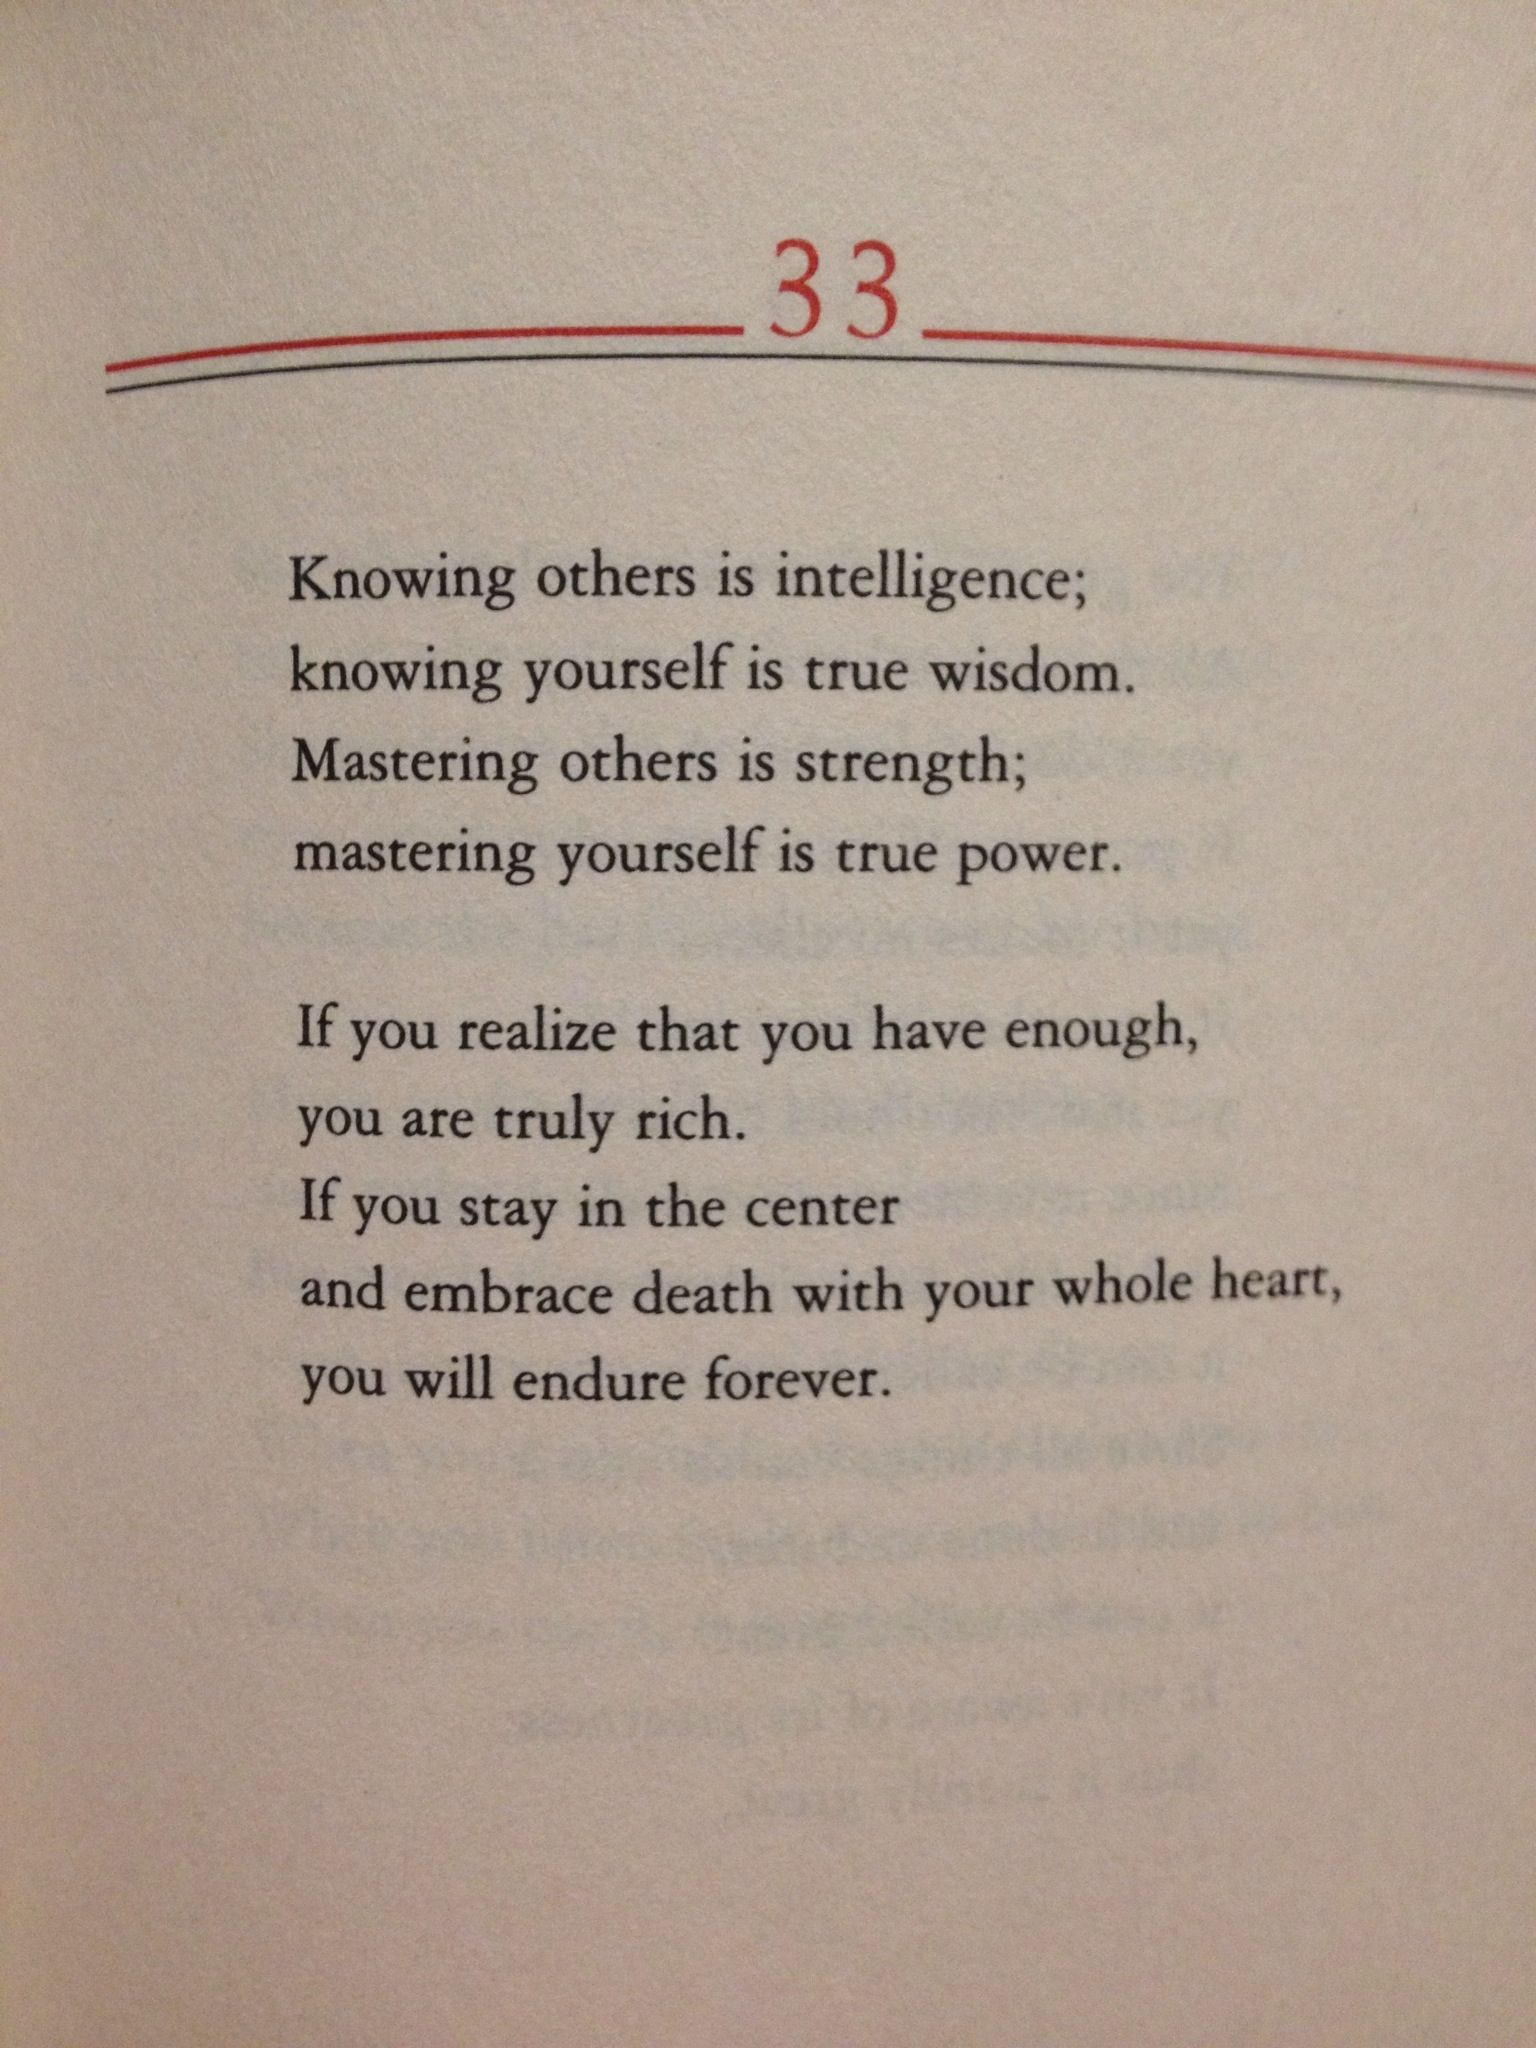 tao te ching stephen mitchell version wise words  tao te ching stephen mitchell version